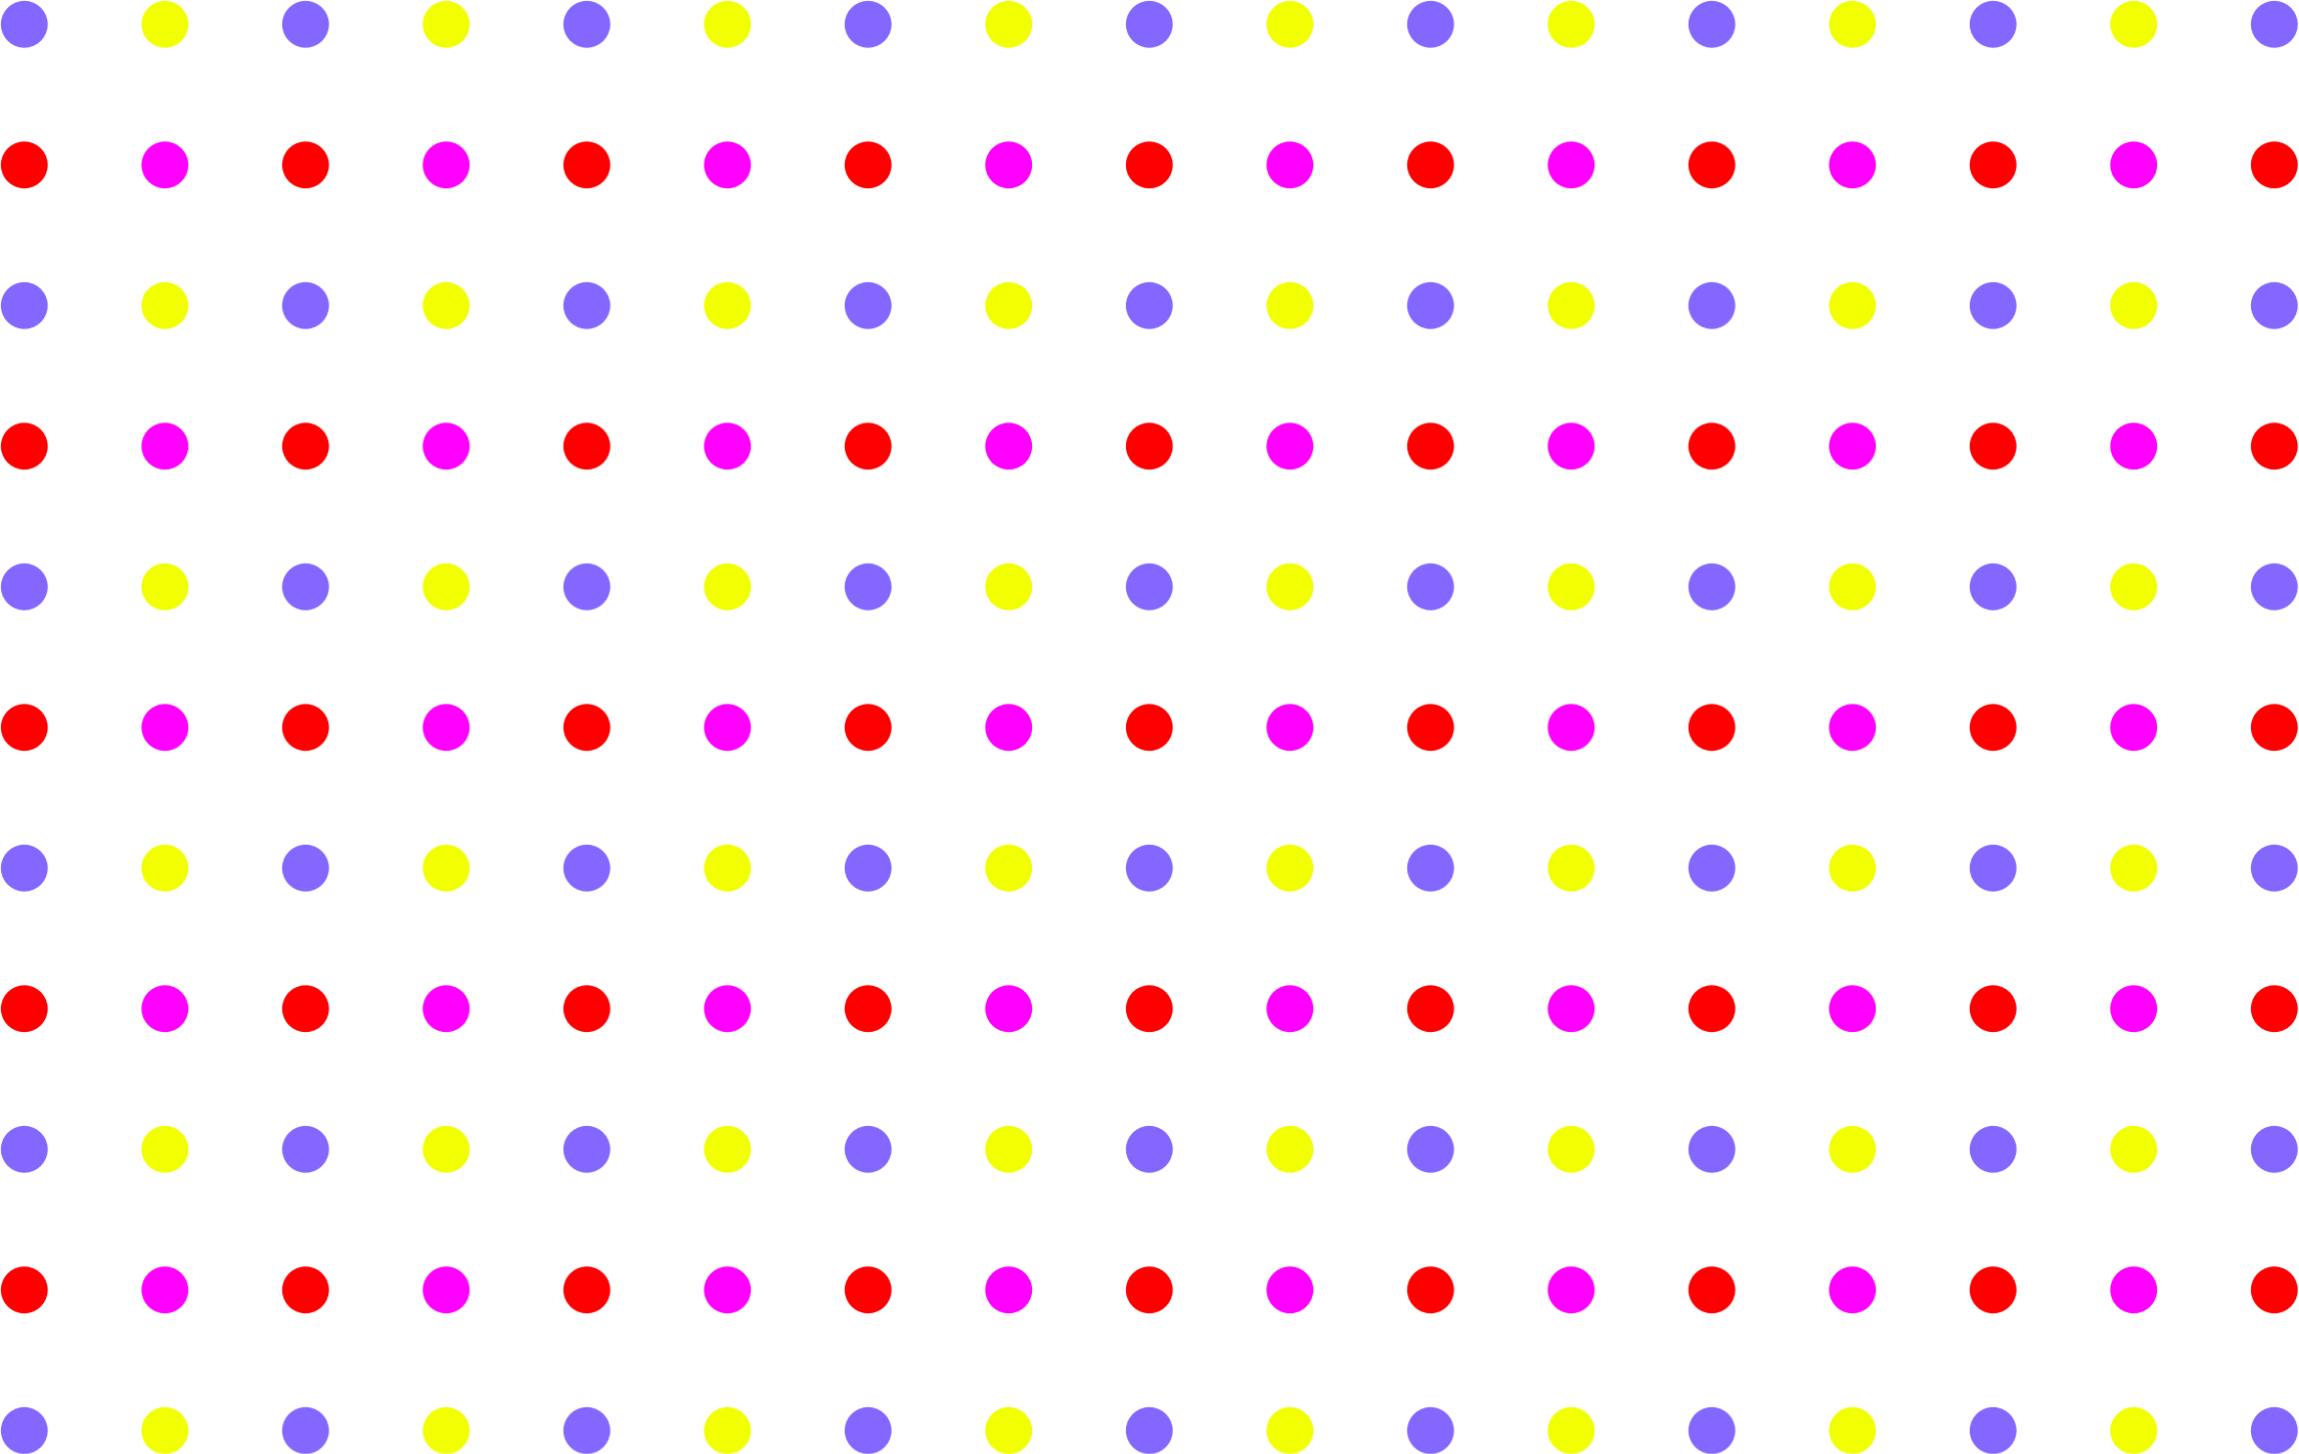 Seamless Colorful Sparse Polka Dot Pattern by GDJ